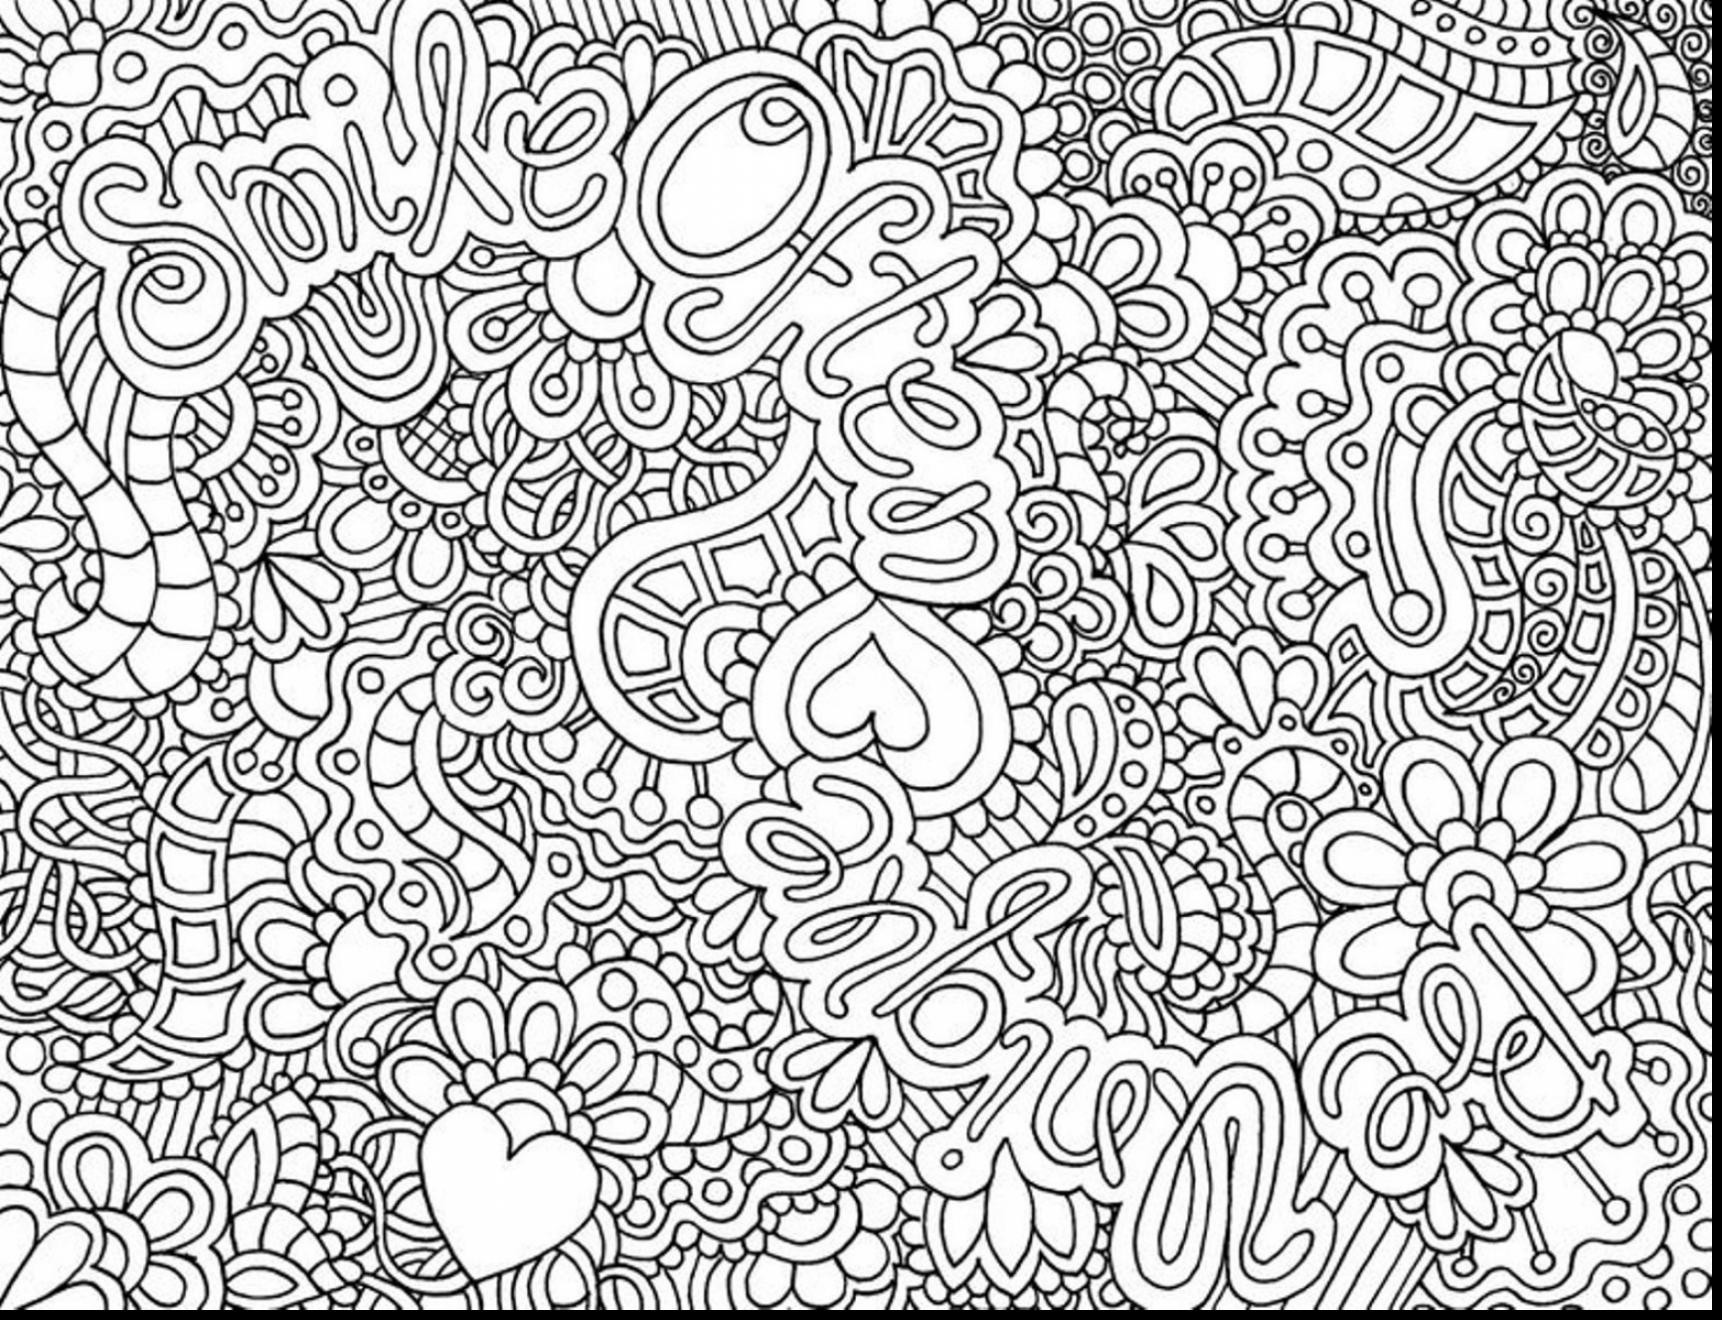 Best ideas about Free Printable Coloring Pages For Adults Only Pdf . Save or Pin Printable Coloring Pages for Adults ly to Print Now.